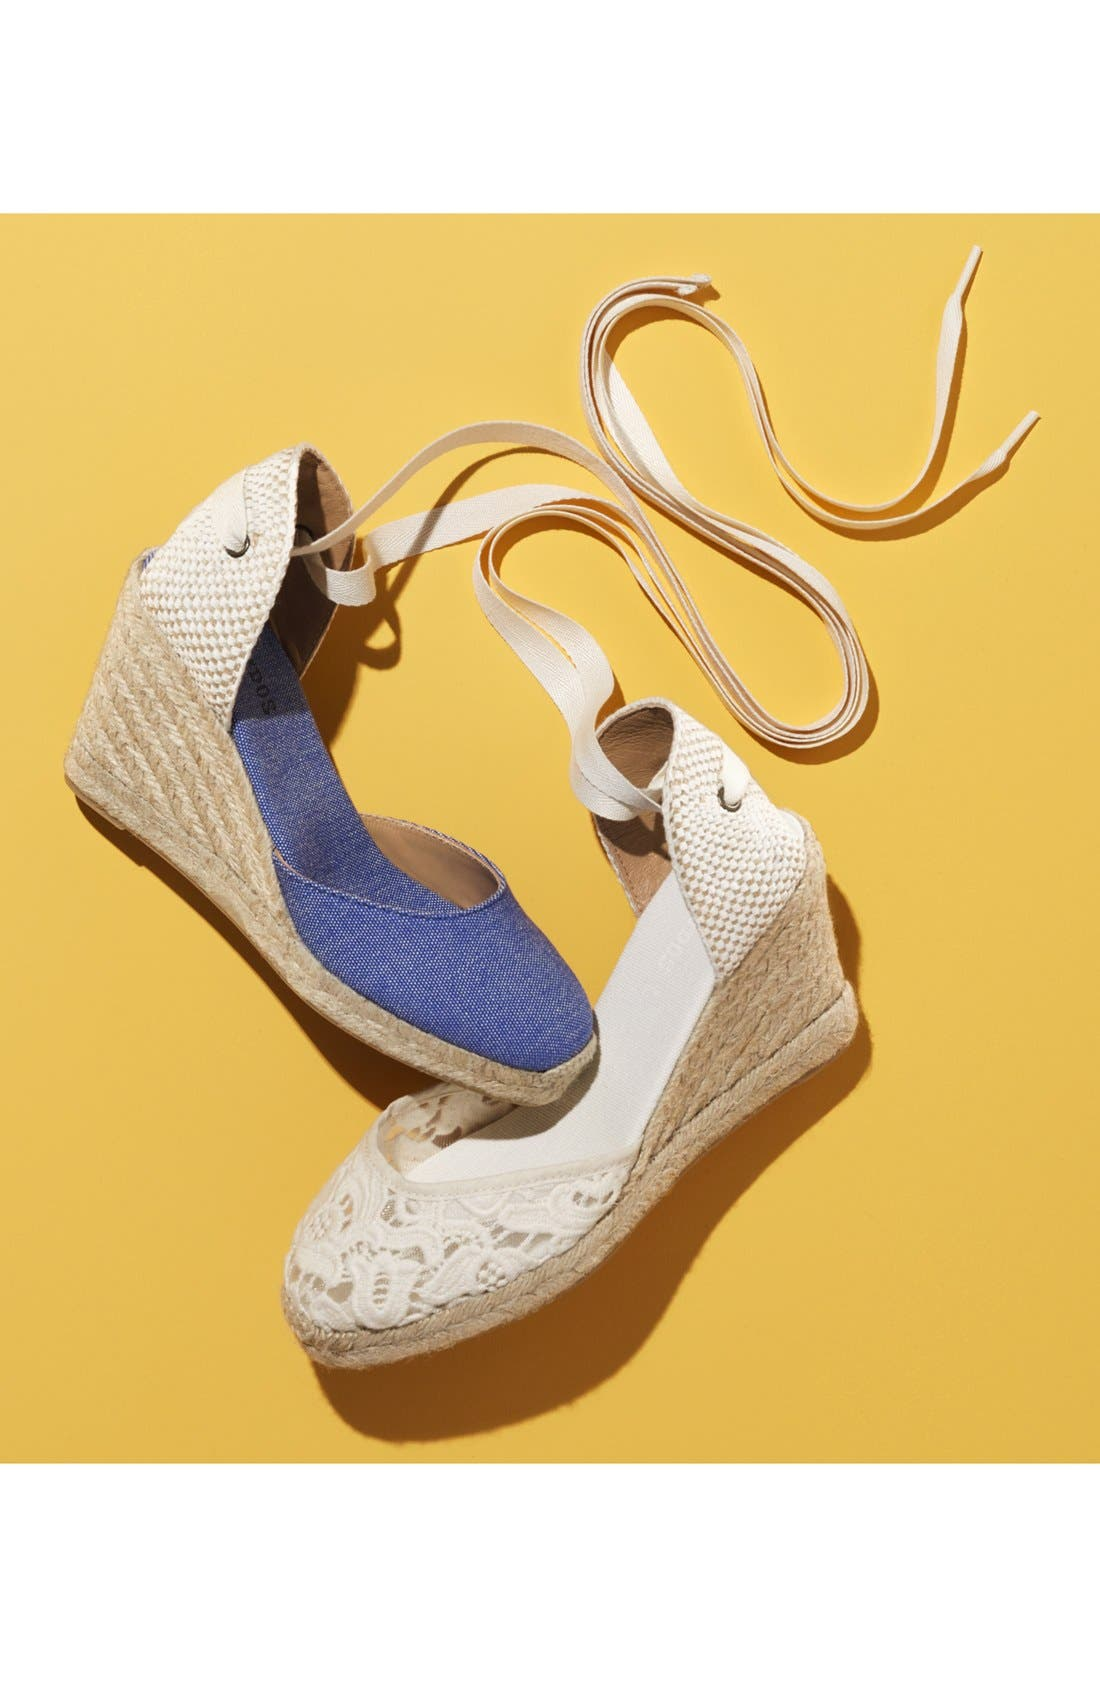 Wedge Lace-Up Espadrille Sandal,                             Alternate thumbnail 7, color,                             711